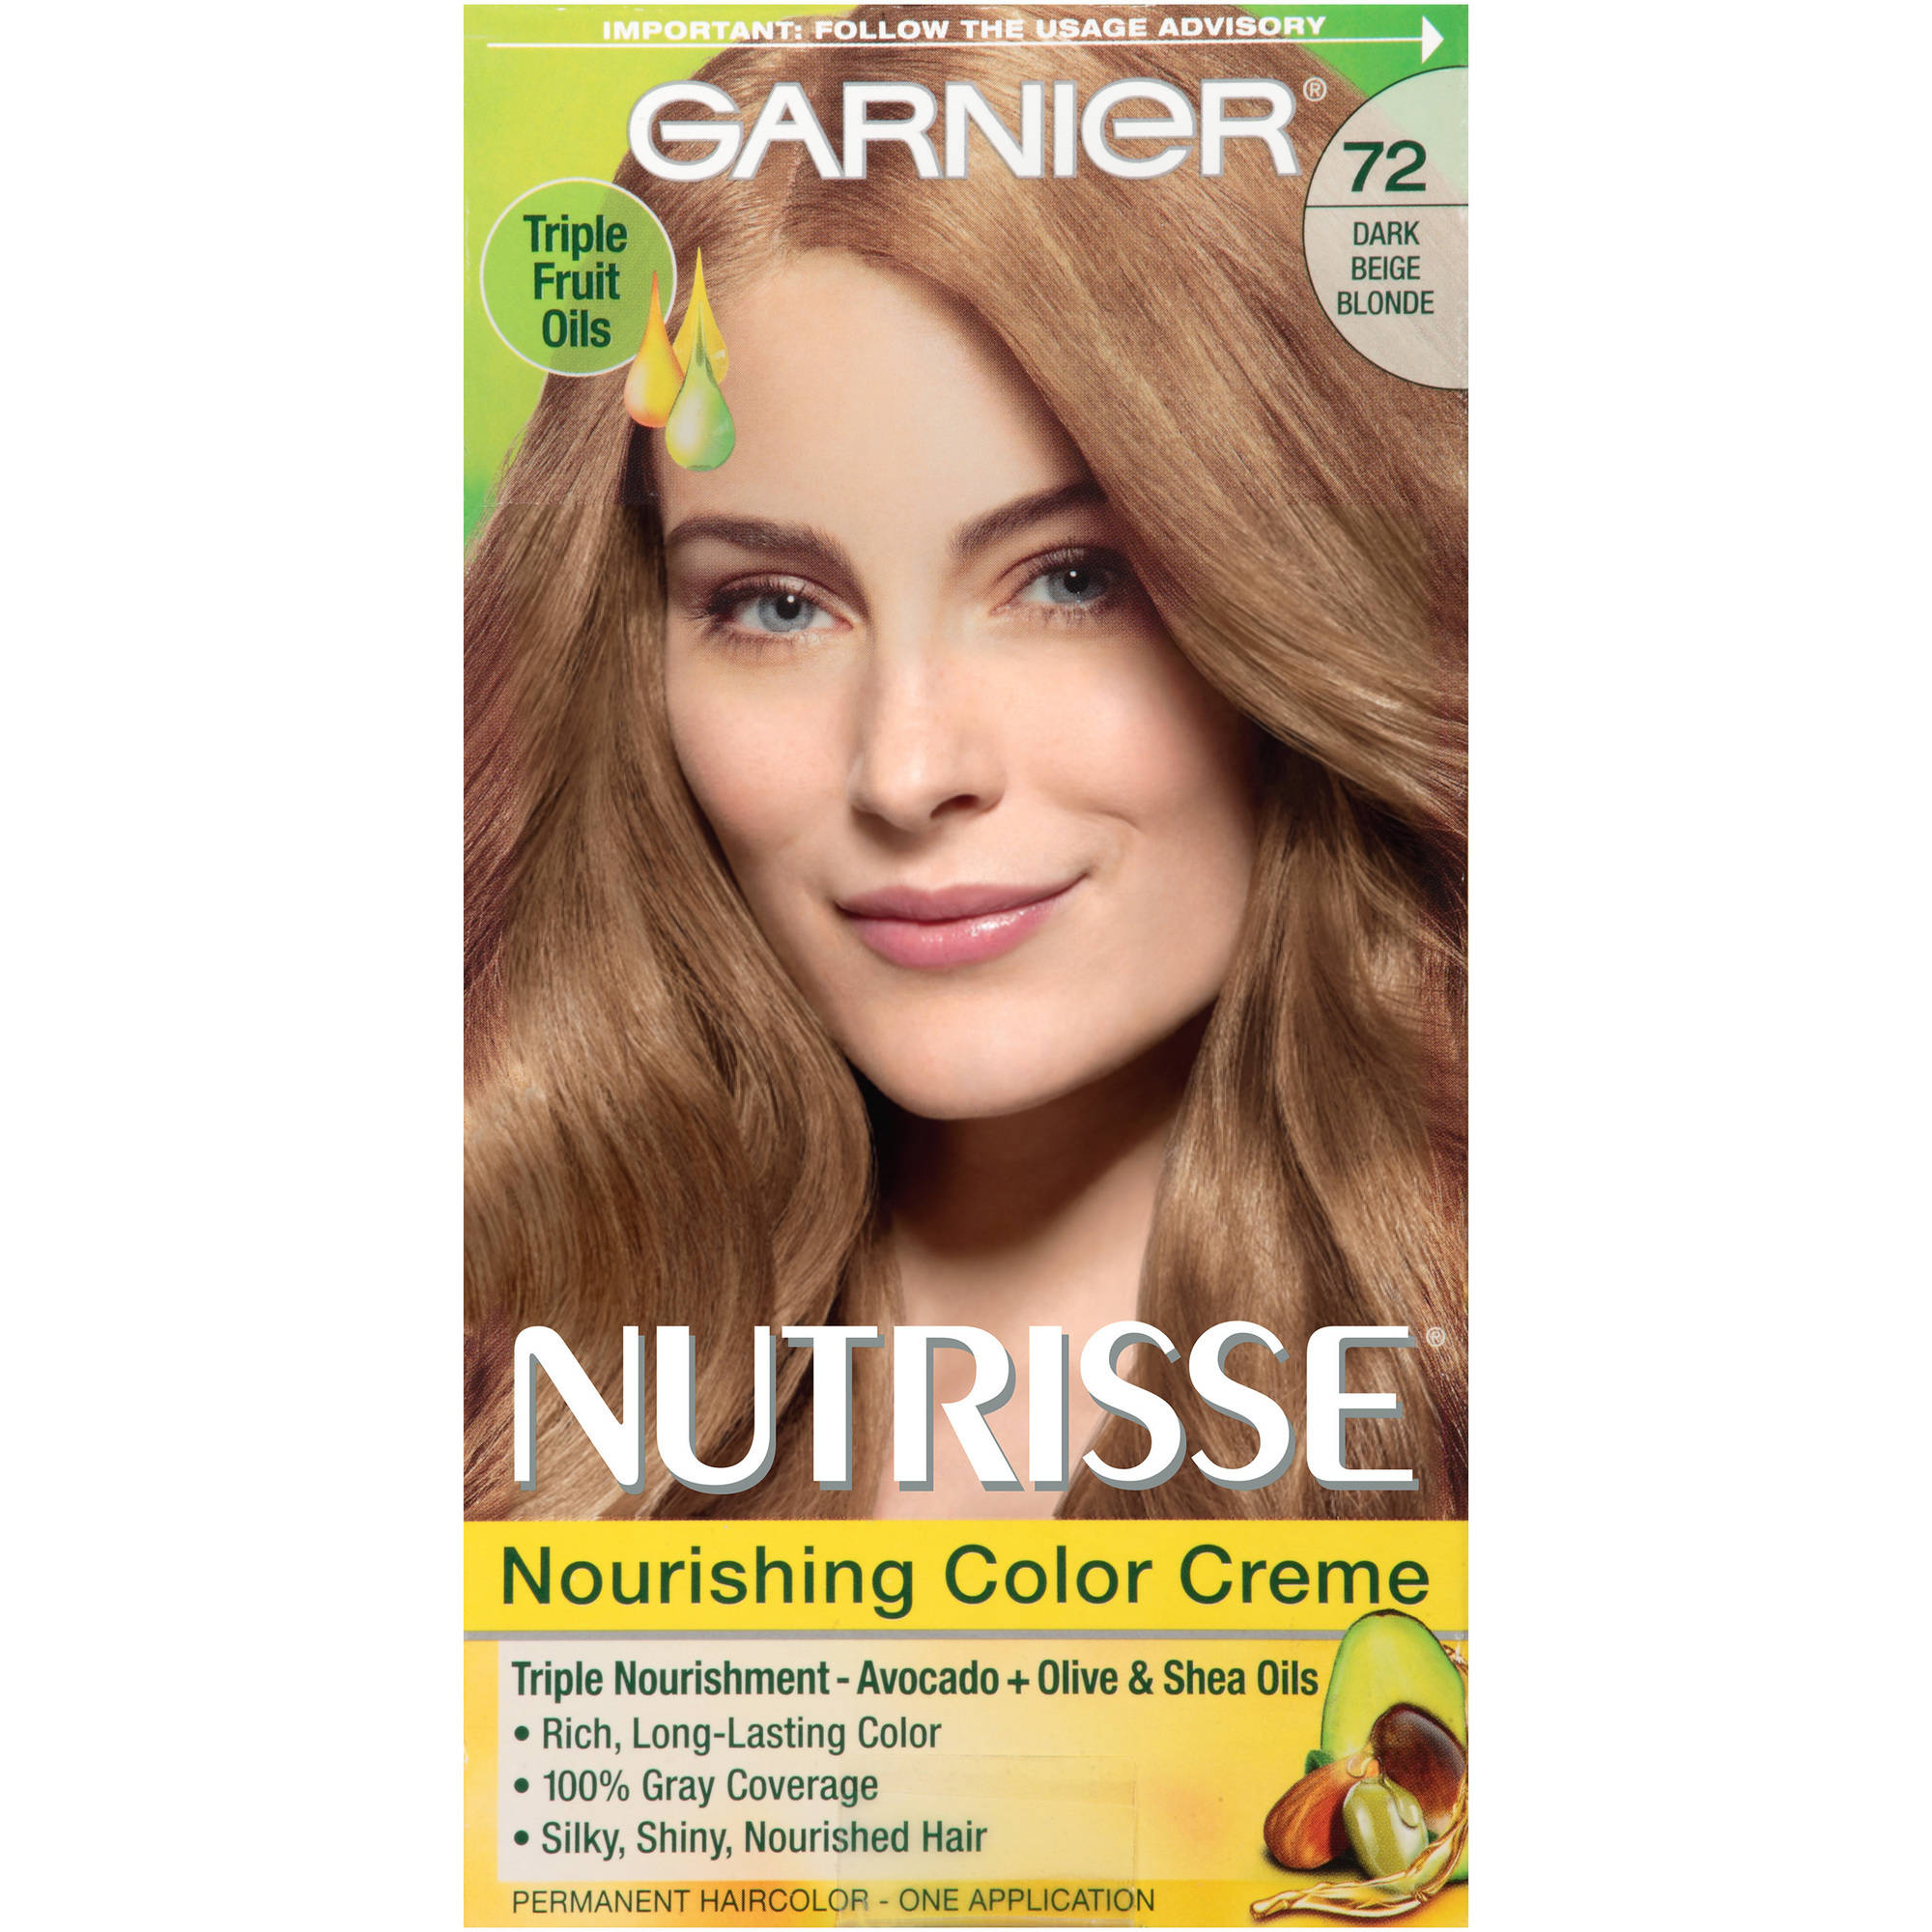 Garnier Nutrisse Nourishing Creme Hair Color